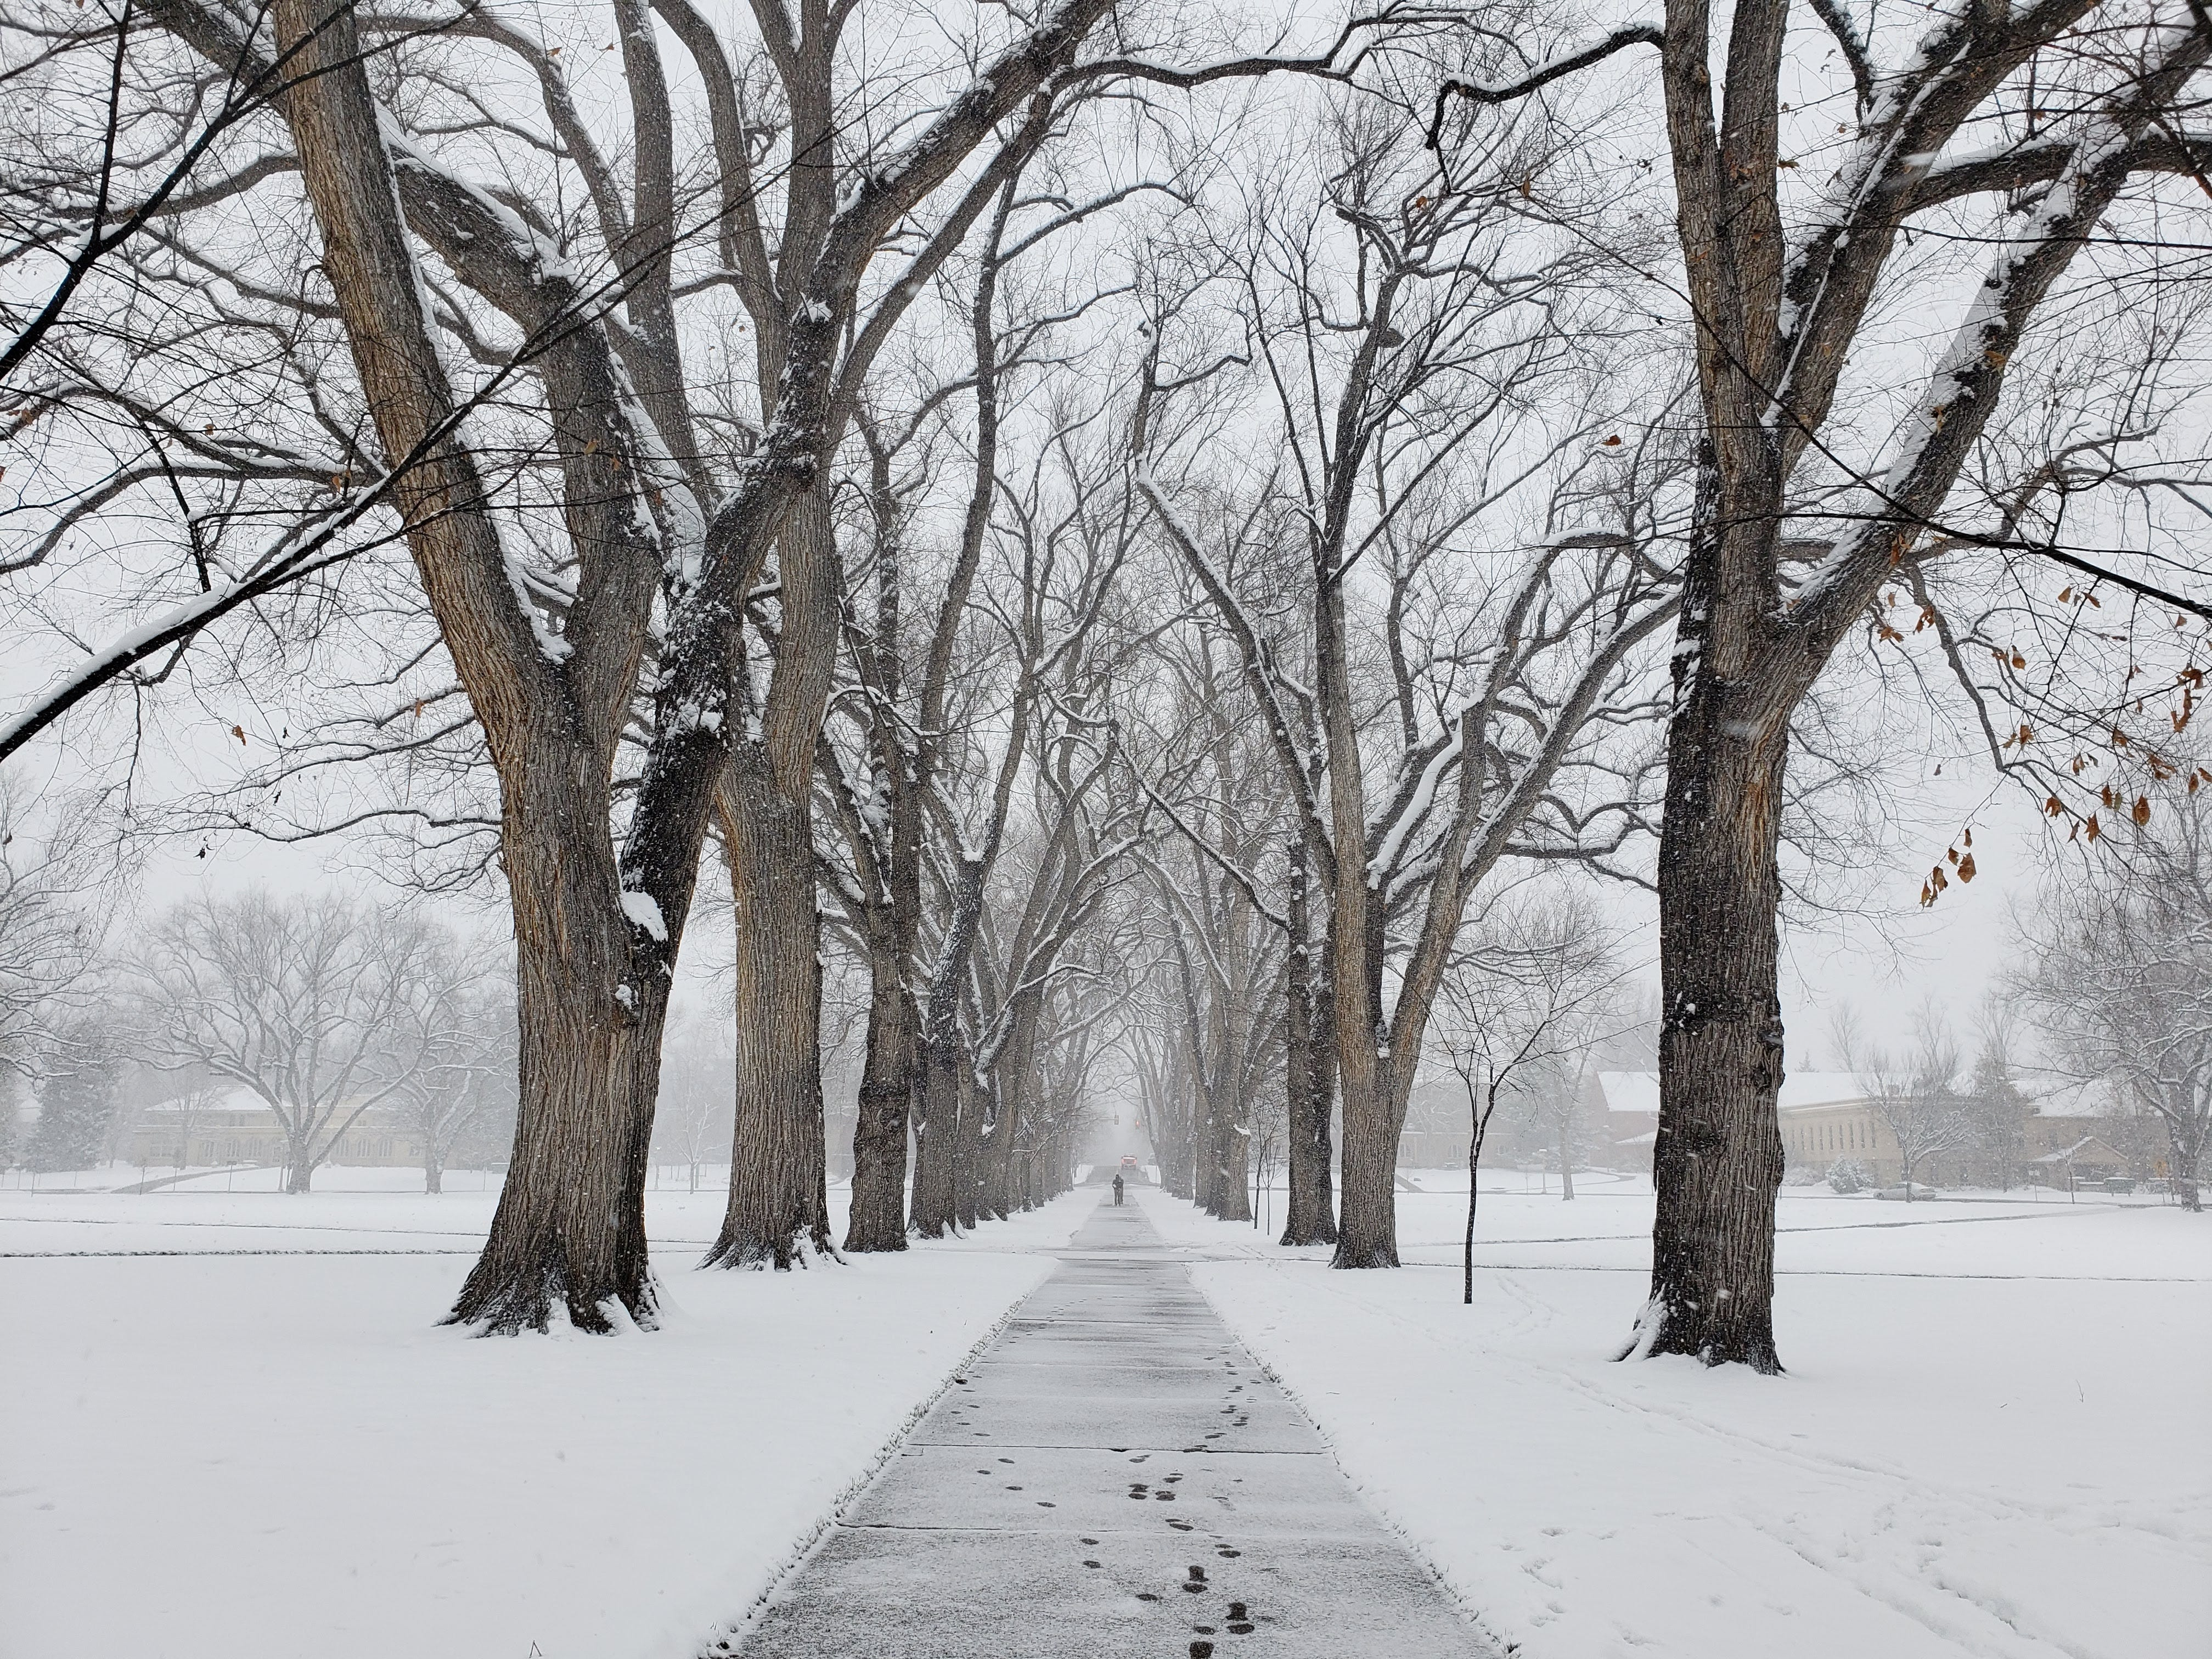 Scenes from a snowy Veteran's Day at the Oval on the Colorado State University campus Nov. 11, 2018.